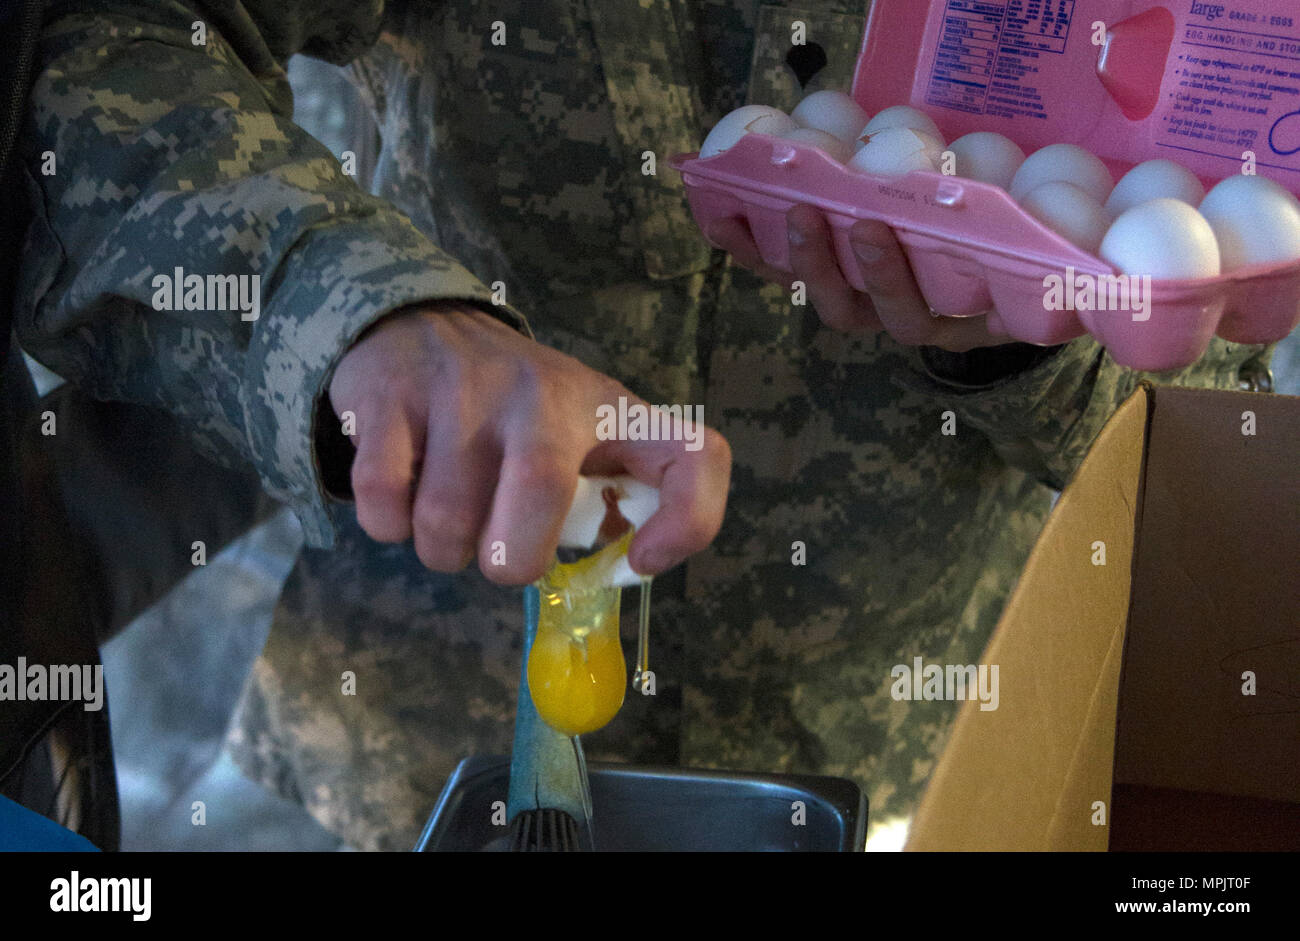 A U.S. Army Reserve Soldier from the culinary team of the 391st Military Police Battalion, breaks eggs in order to prepare crepes during food service operations in the field as part of the 49th Philip A. Connelly Award for Excellence in Army Food Service competition at Camp Blanding, Florida, March 17, 2017. The 391st MP Bn., one of four Army-wide finalists, selected Camp Blanding, Florida, as their location for the final level of testing in the competition. (U.S. Army Reserve photo by Sgt. 1st Class Carlos Lazo) - Stock Image